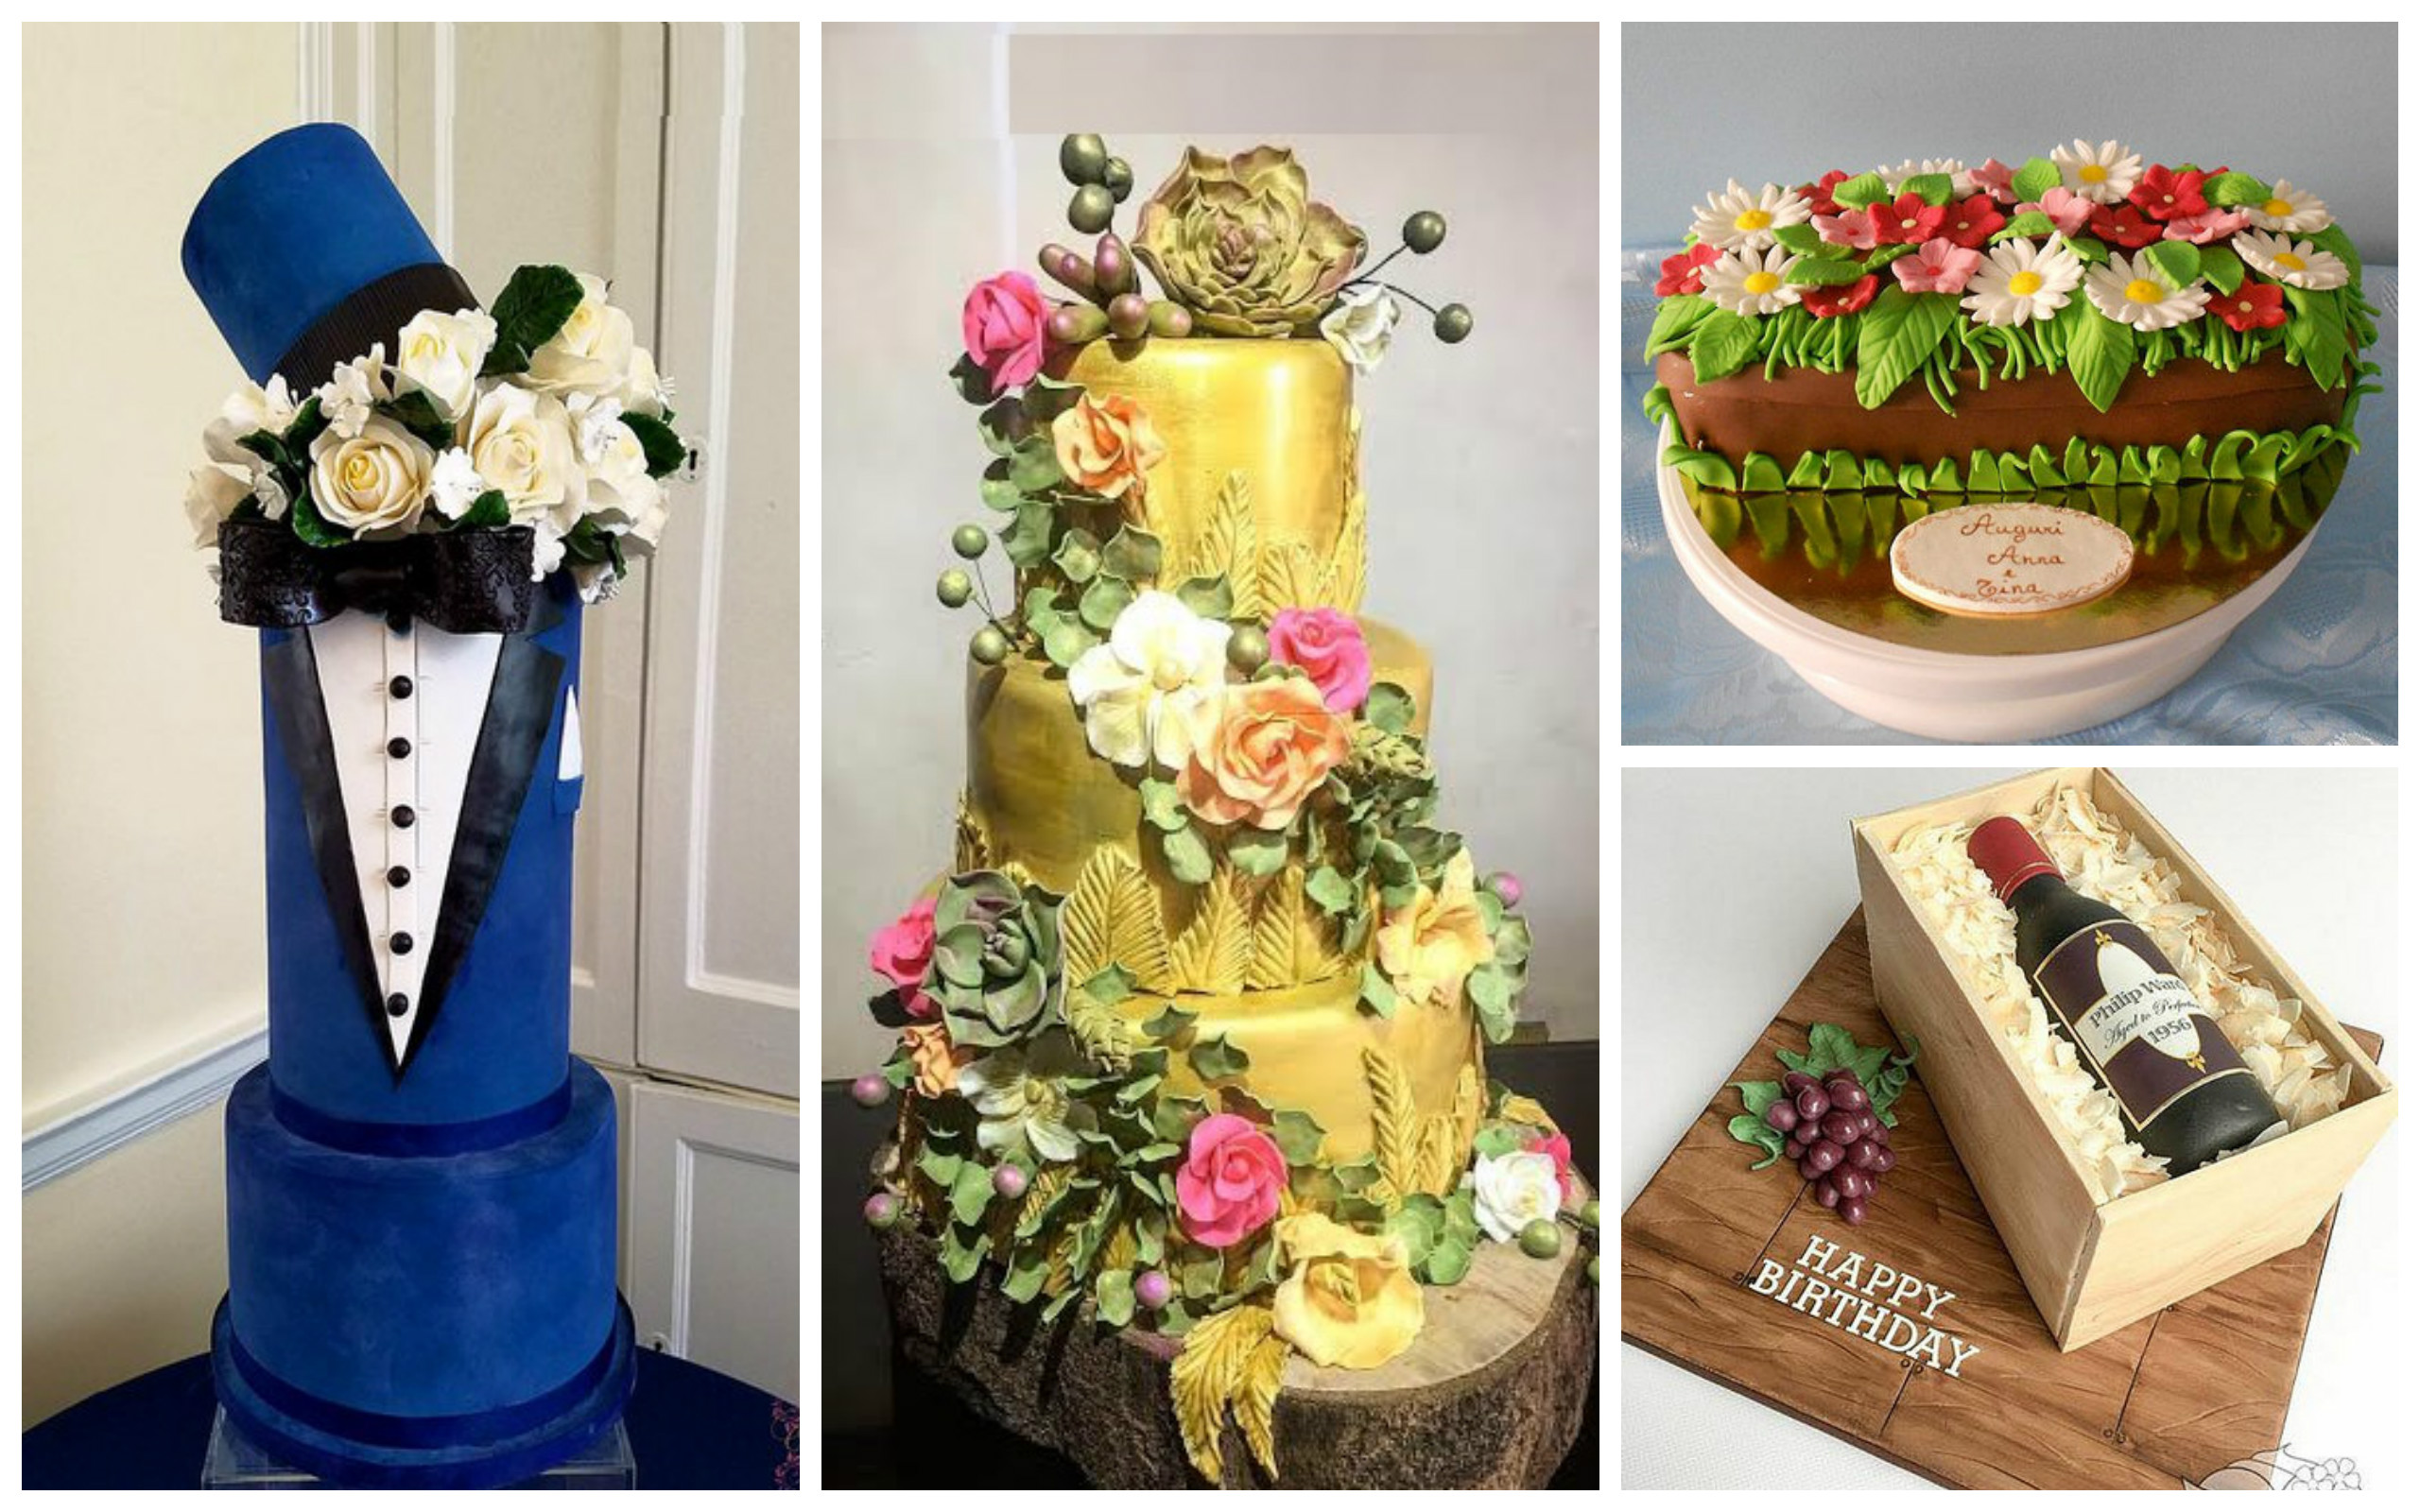 wedding ideas competitions competition world s class cake designer page 6 of 15 28089